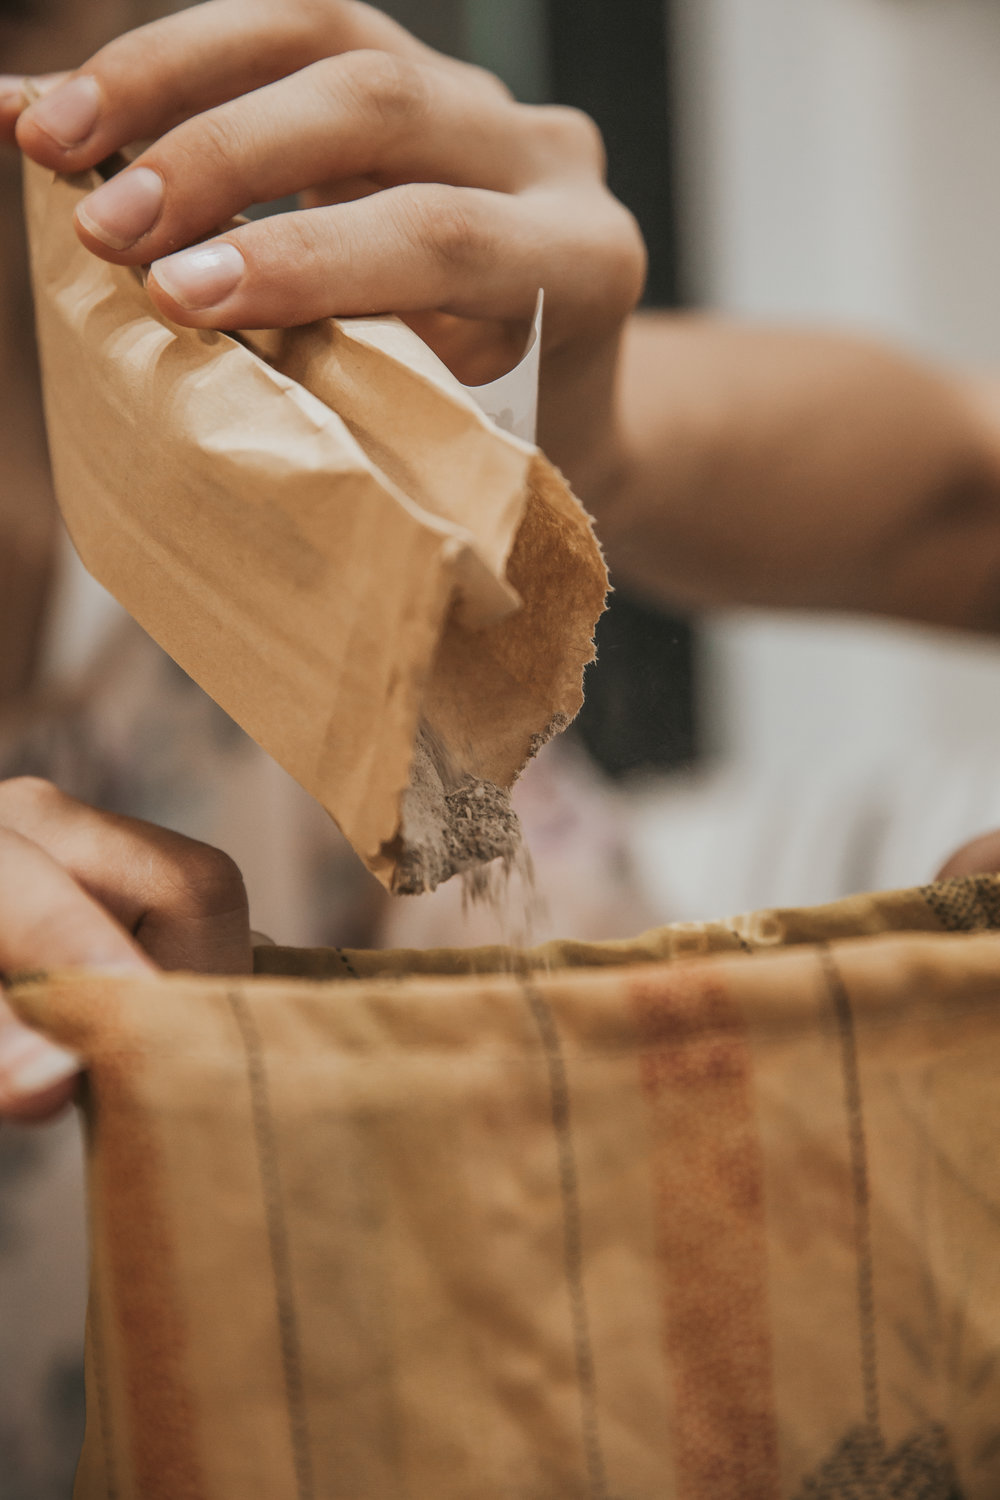 Pouring kava into a bag to strain into the bowl